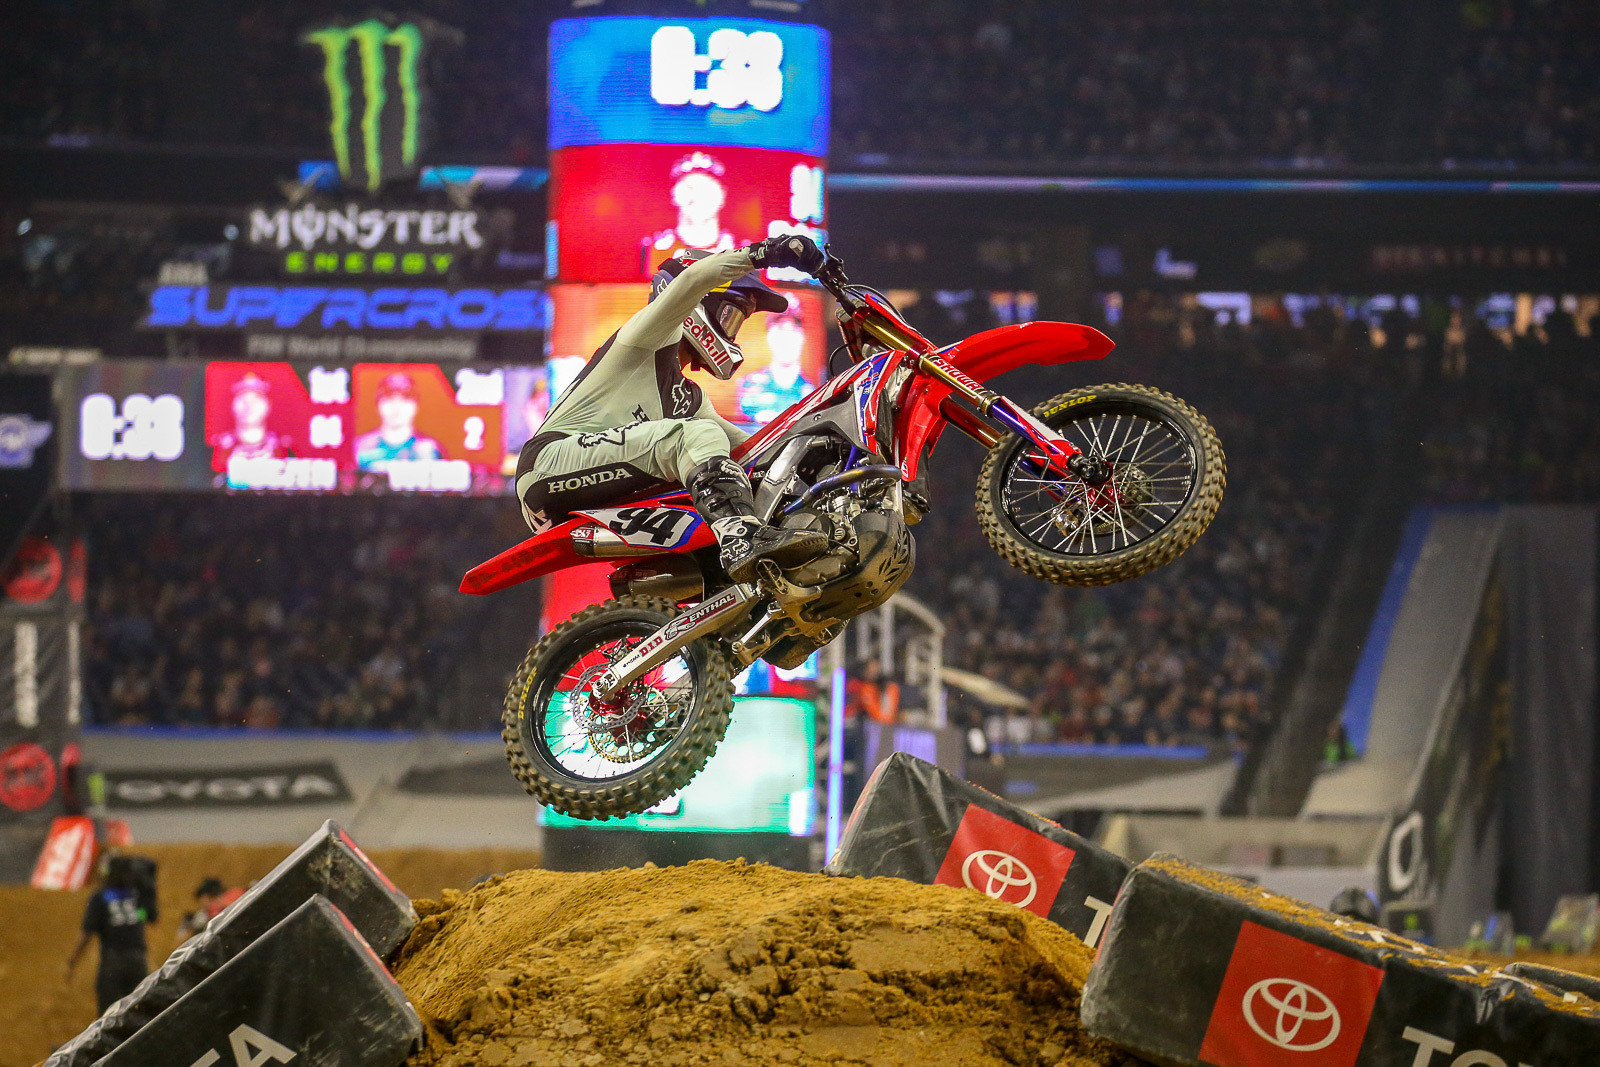 Ken Roczen won the first moto of the night, but a first-turn crash (and dinged foot) in the second moto hurt his overall.